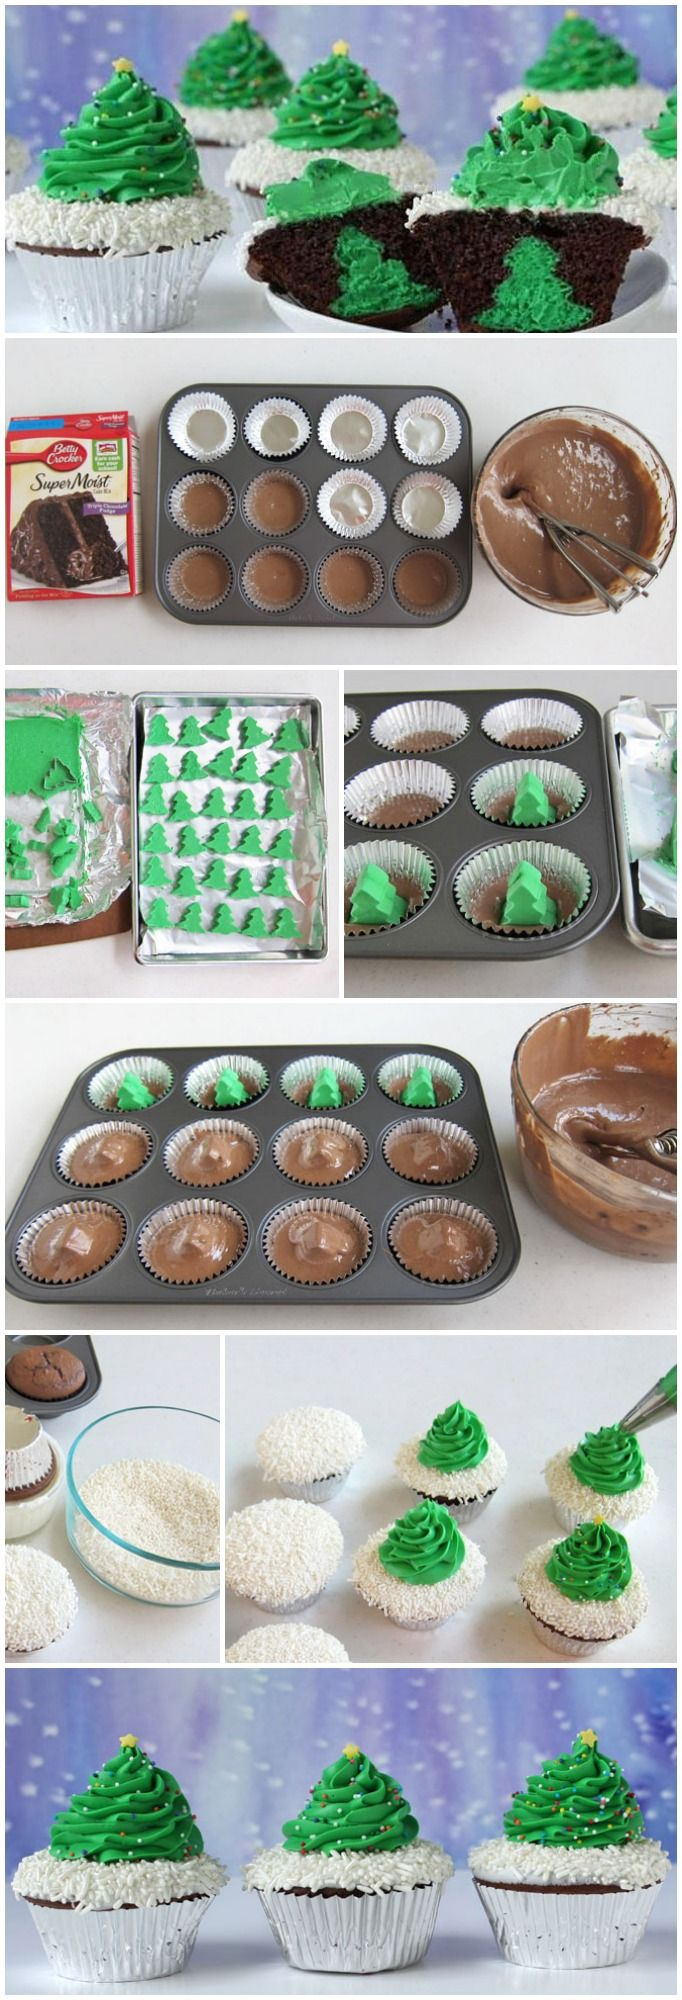 Cheesecake-Stuffed #Christmas Tree Cupcakes #bettycrocker. You could do the same thing but hearts for valentines day